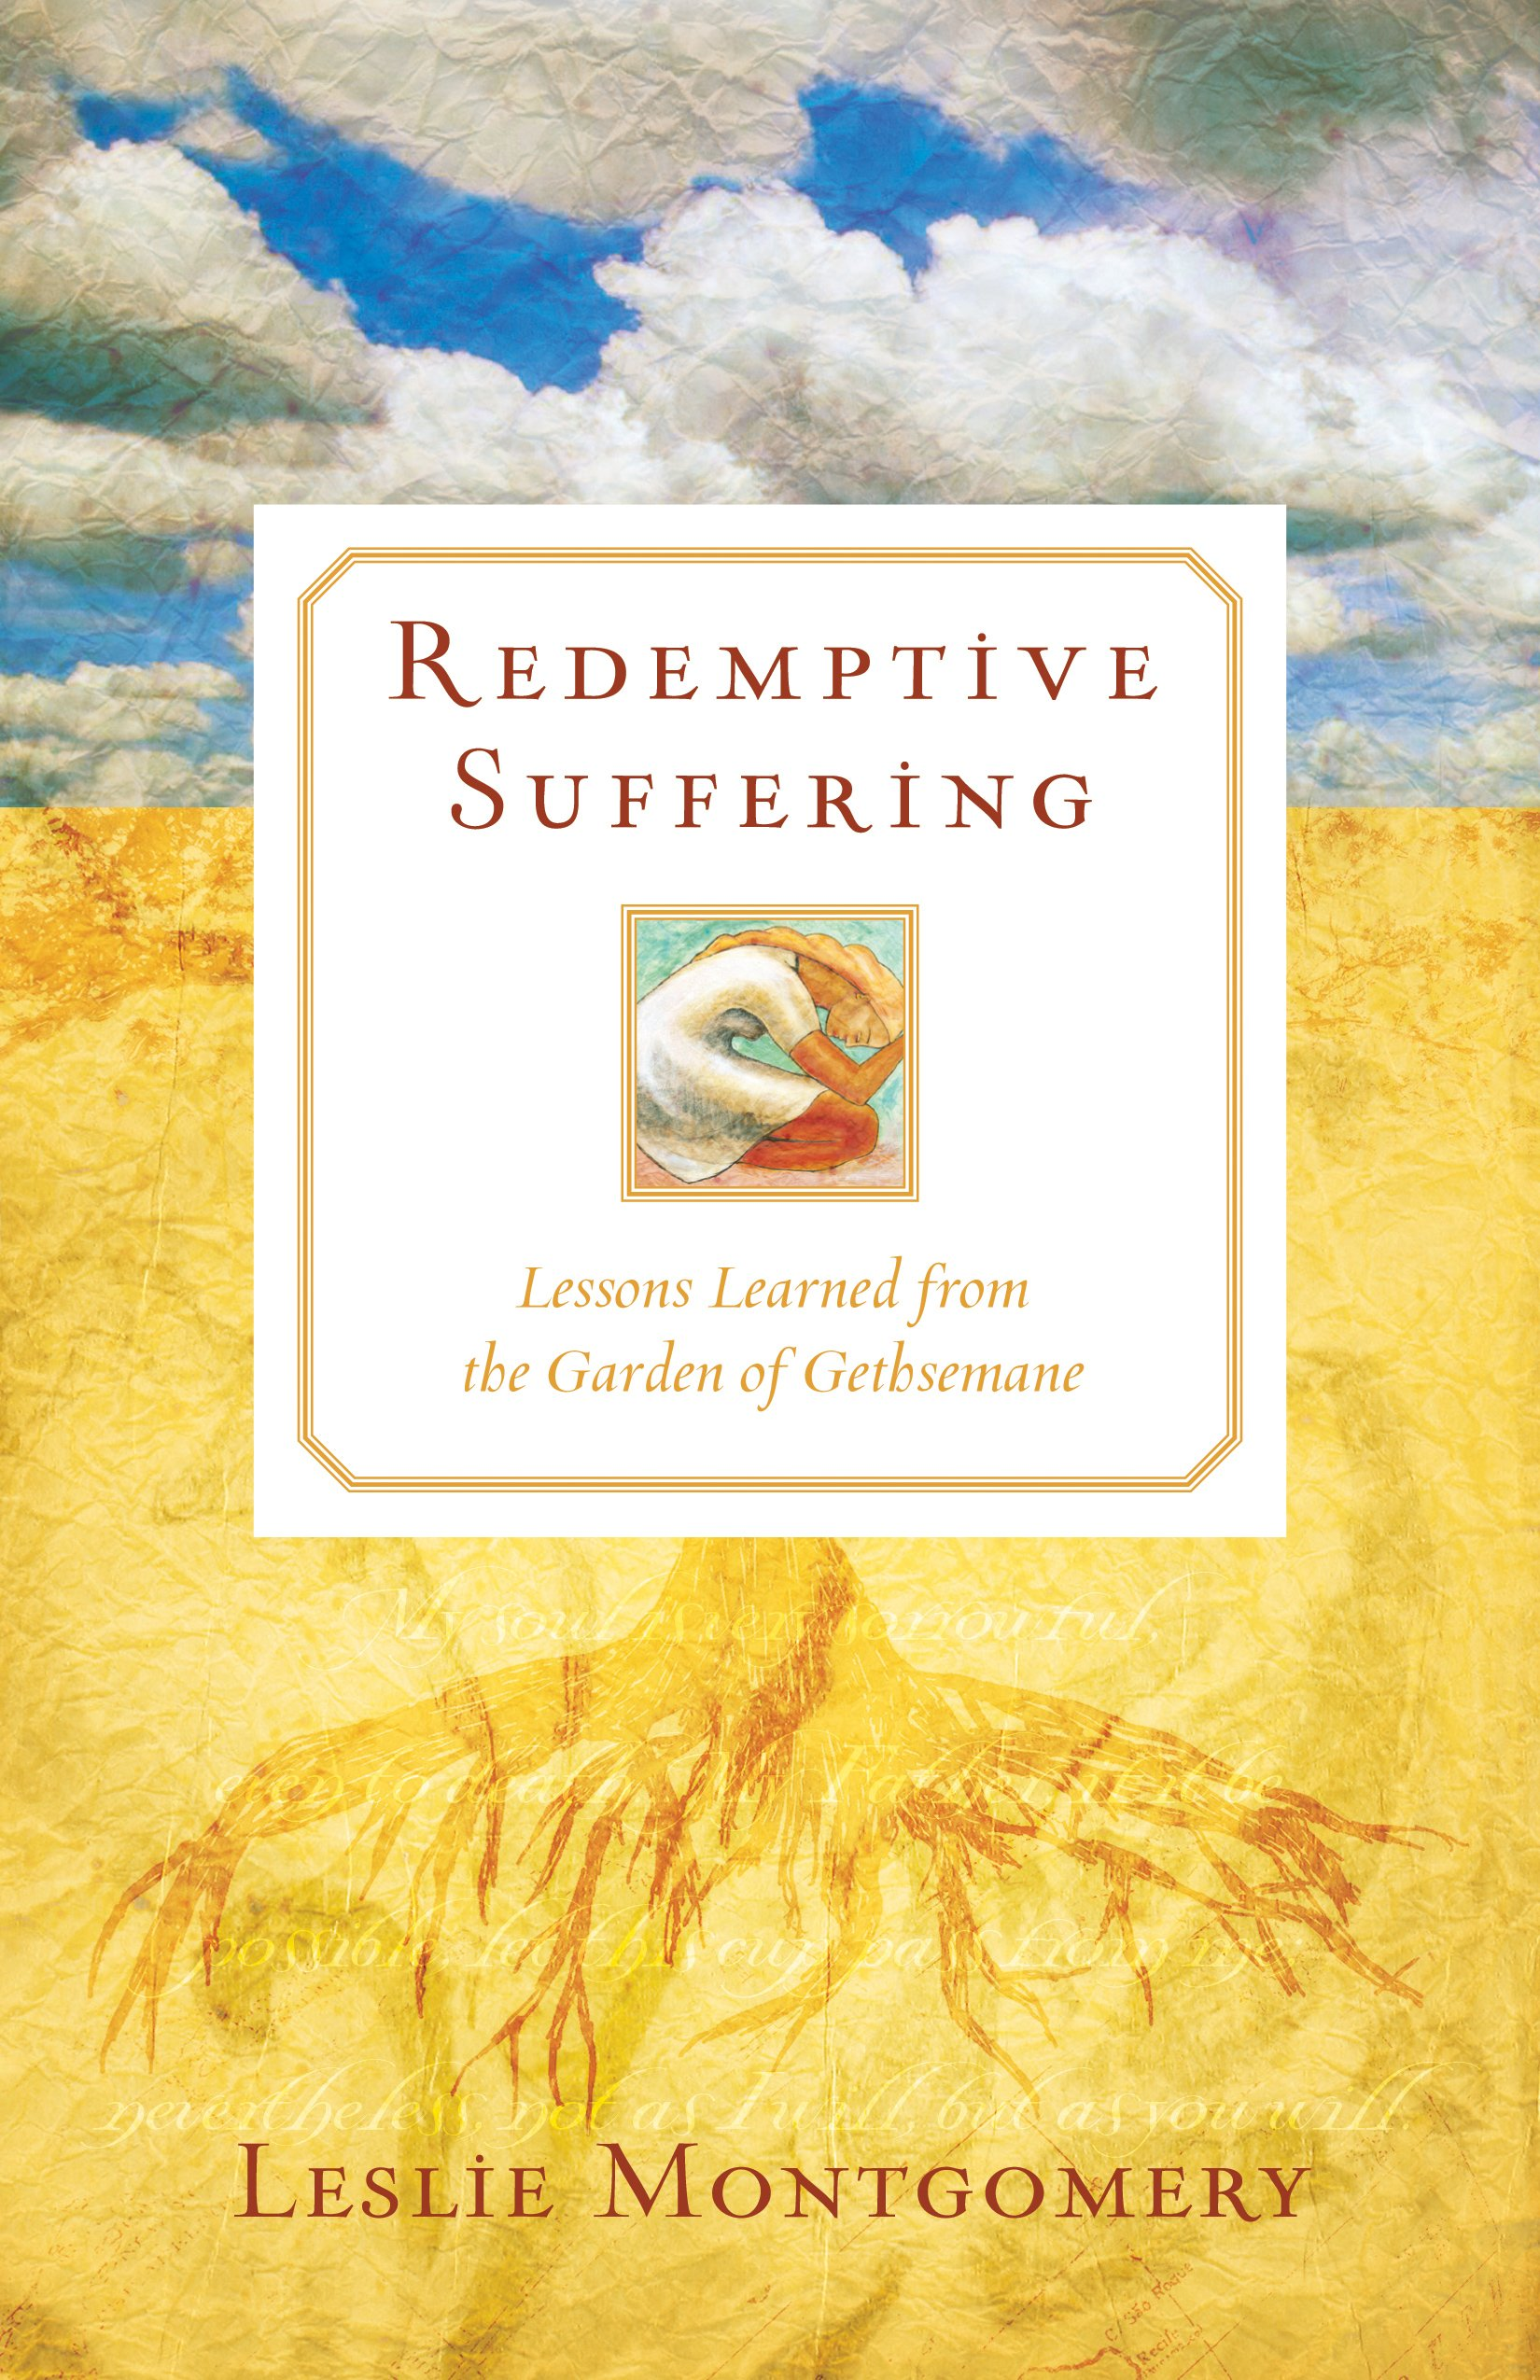 Redemptive Suffering: Lessons Learned from the Garden of Gethsemane (English and Spanish Edition)